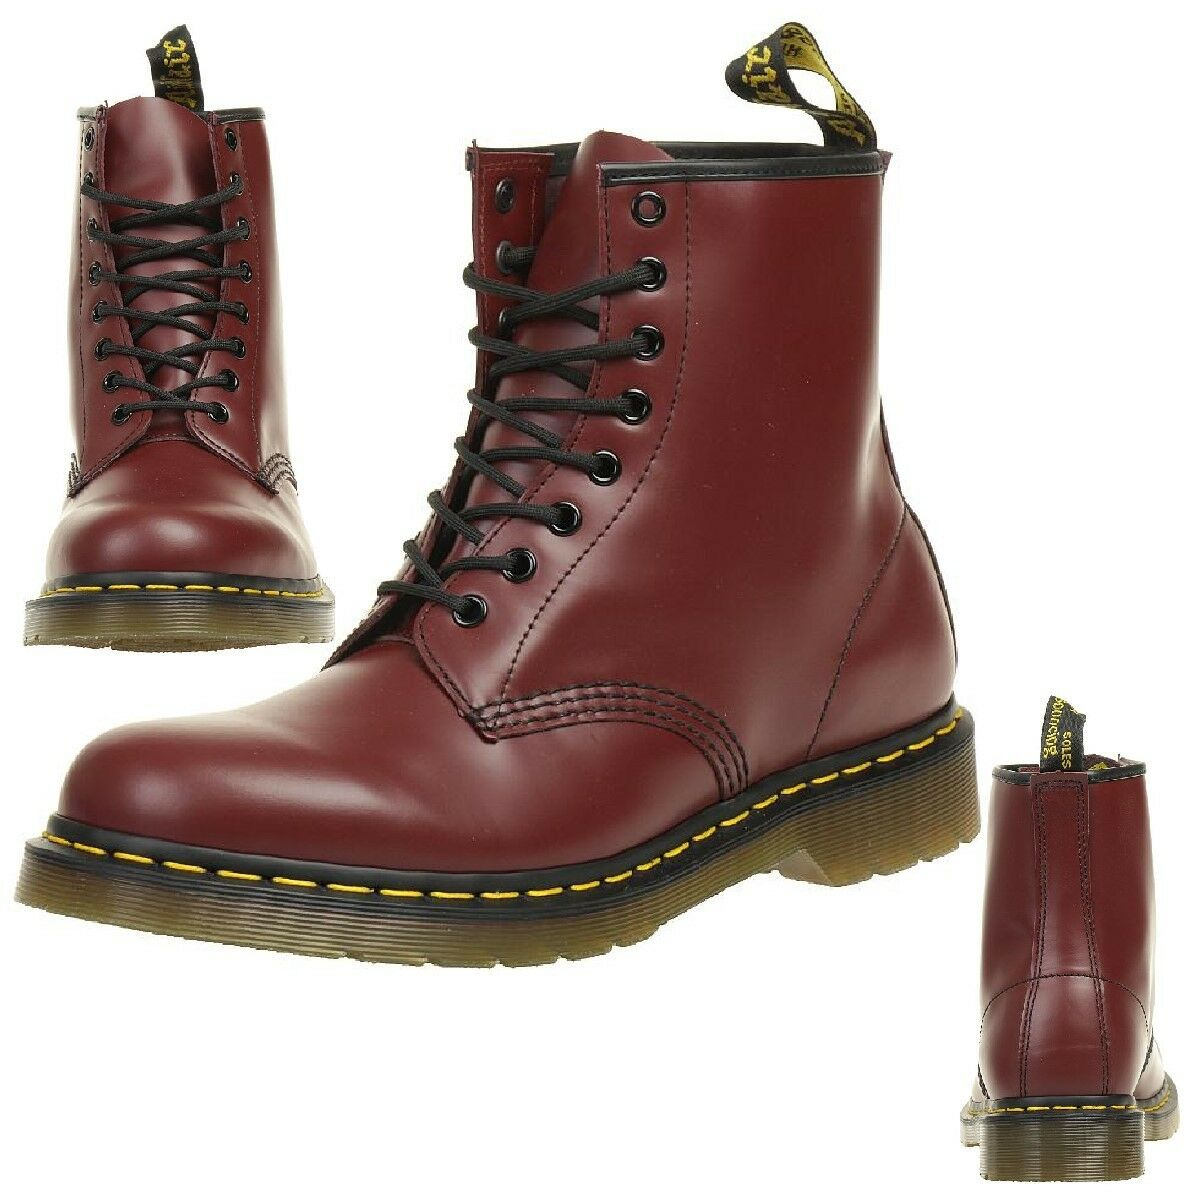 Dr. Martens 1460 Cherry rouge Smooth bottes bottes rouge